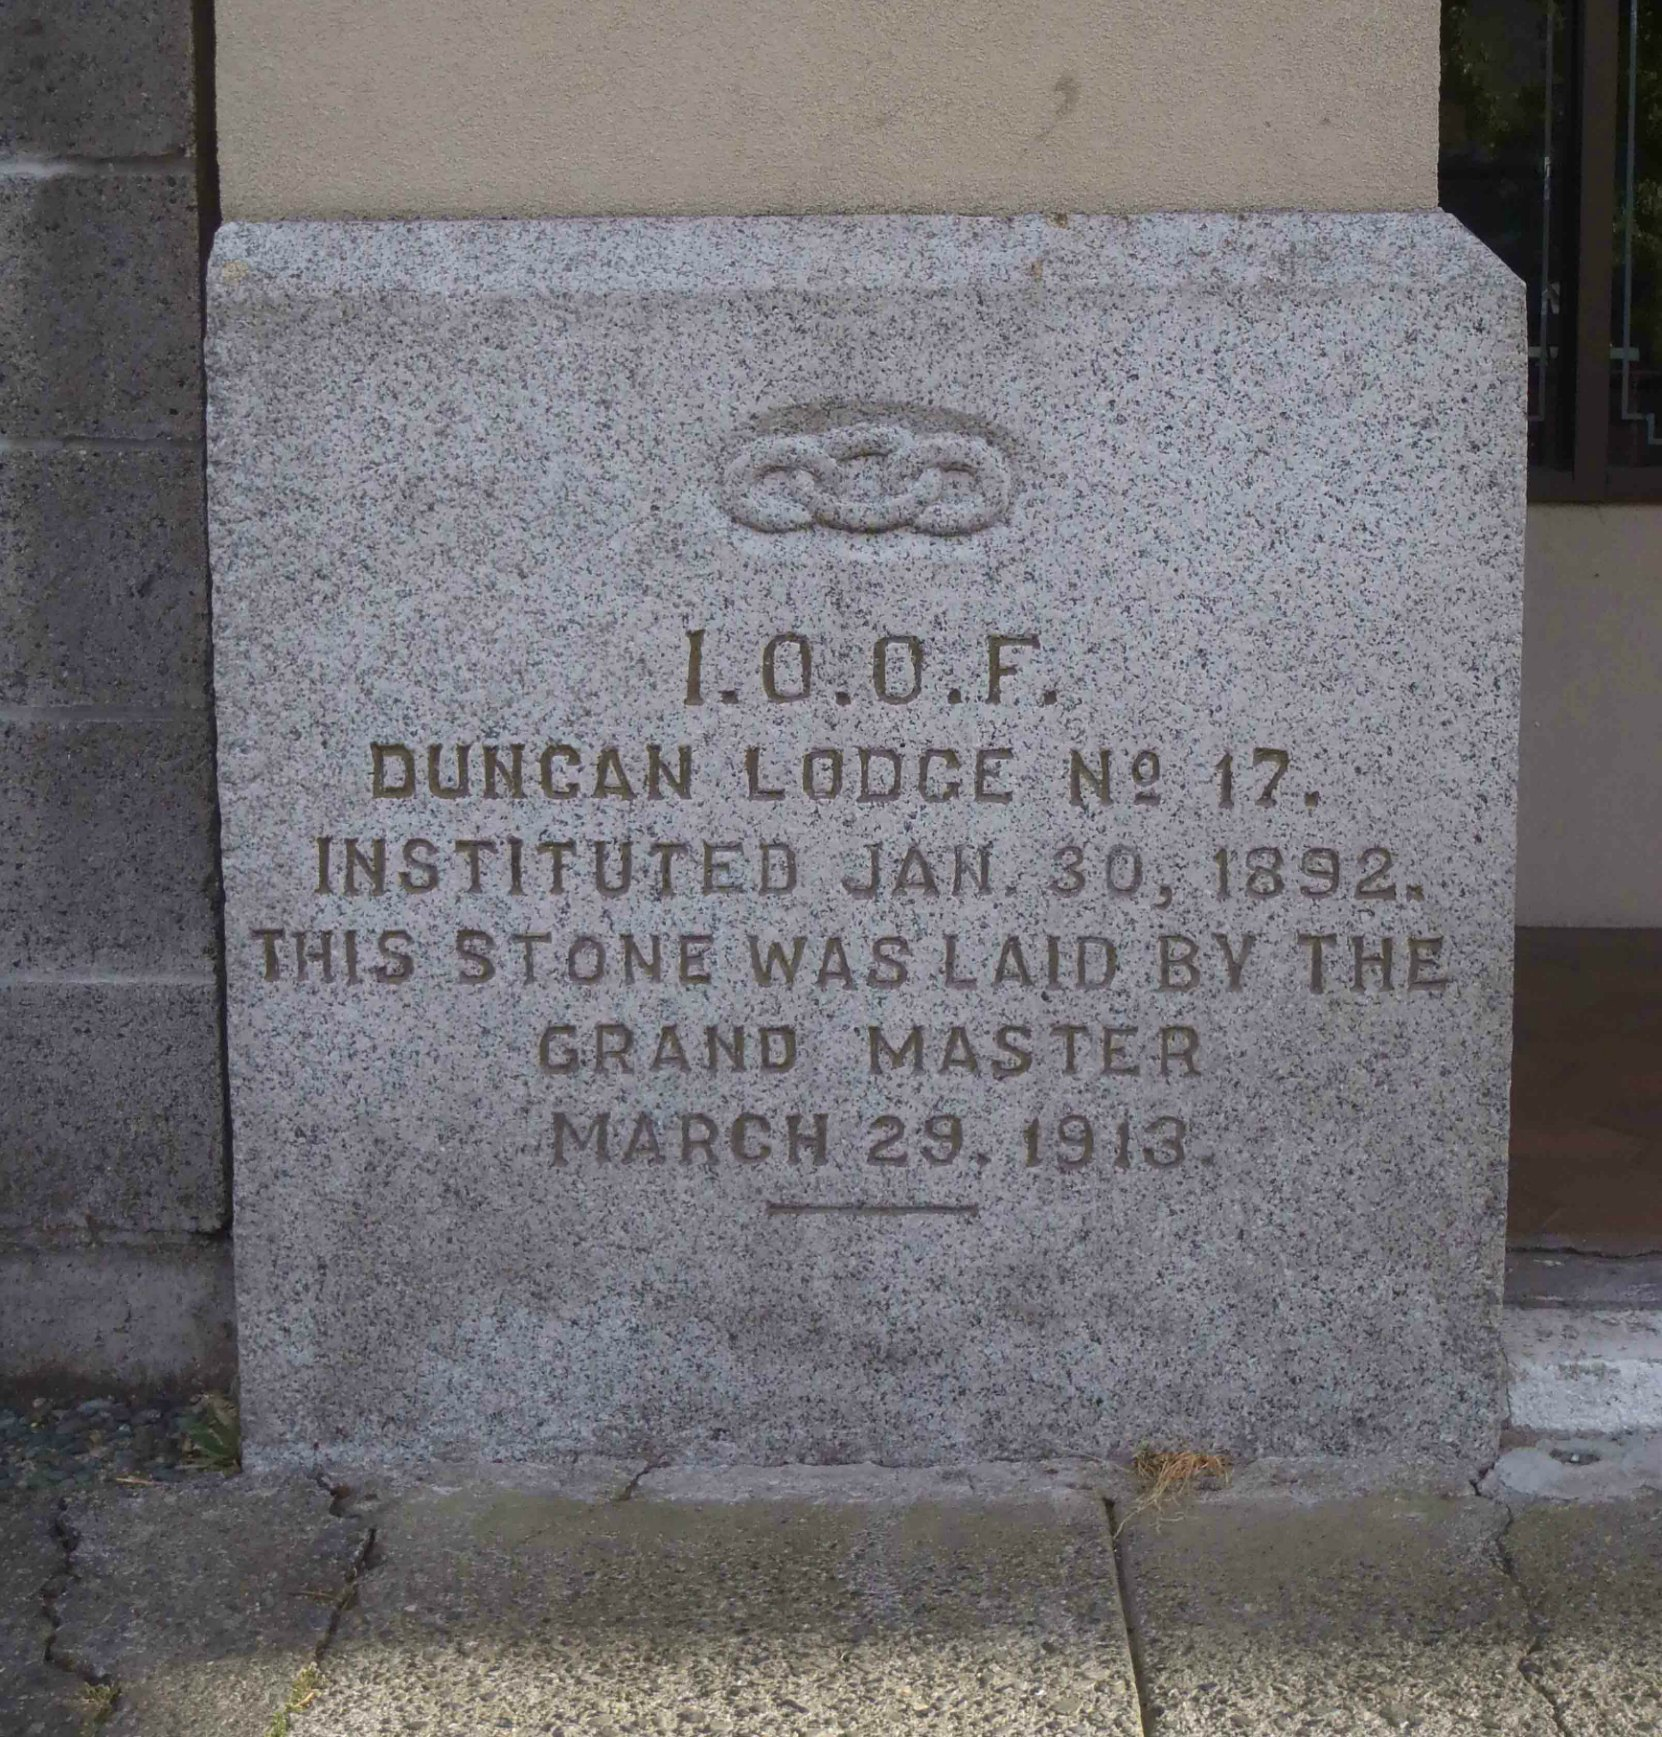 I.O.O.F. Cornerstone of Whittome Building, Station Street, Duncan, B.C.